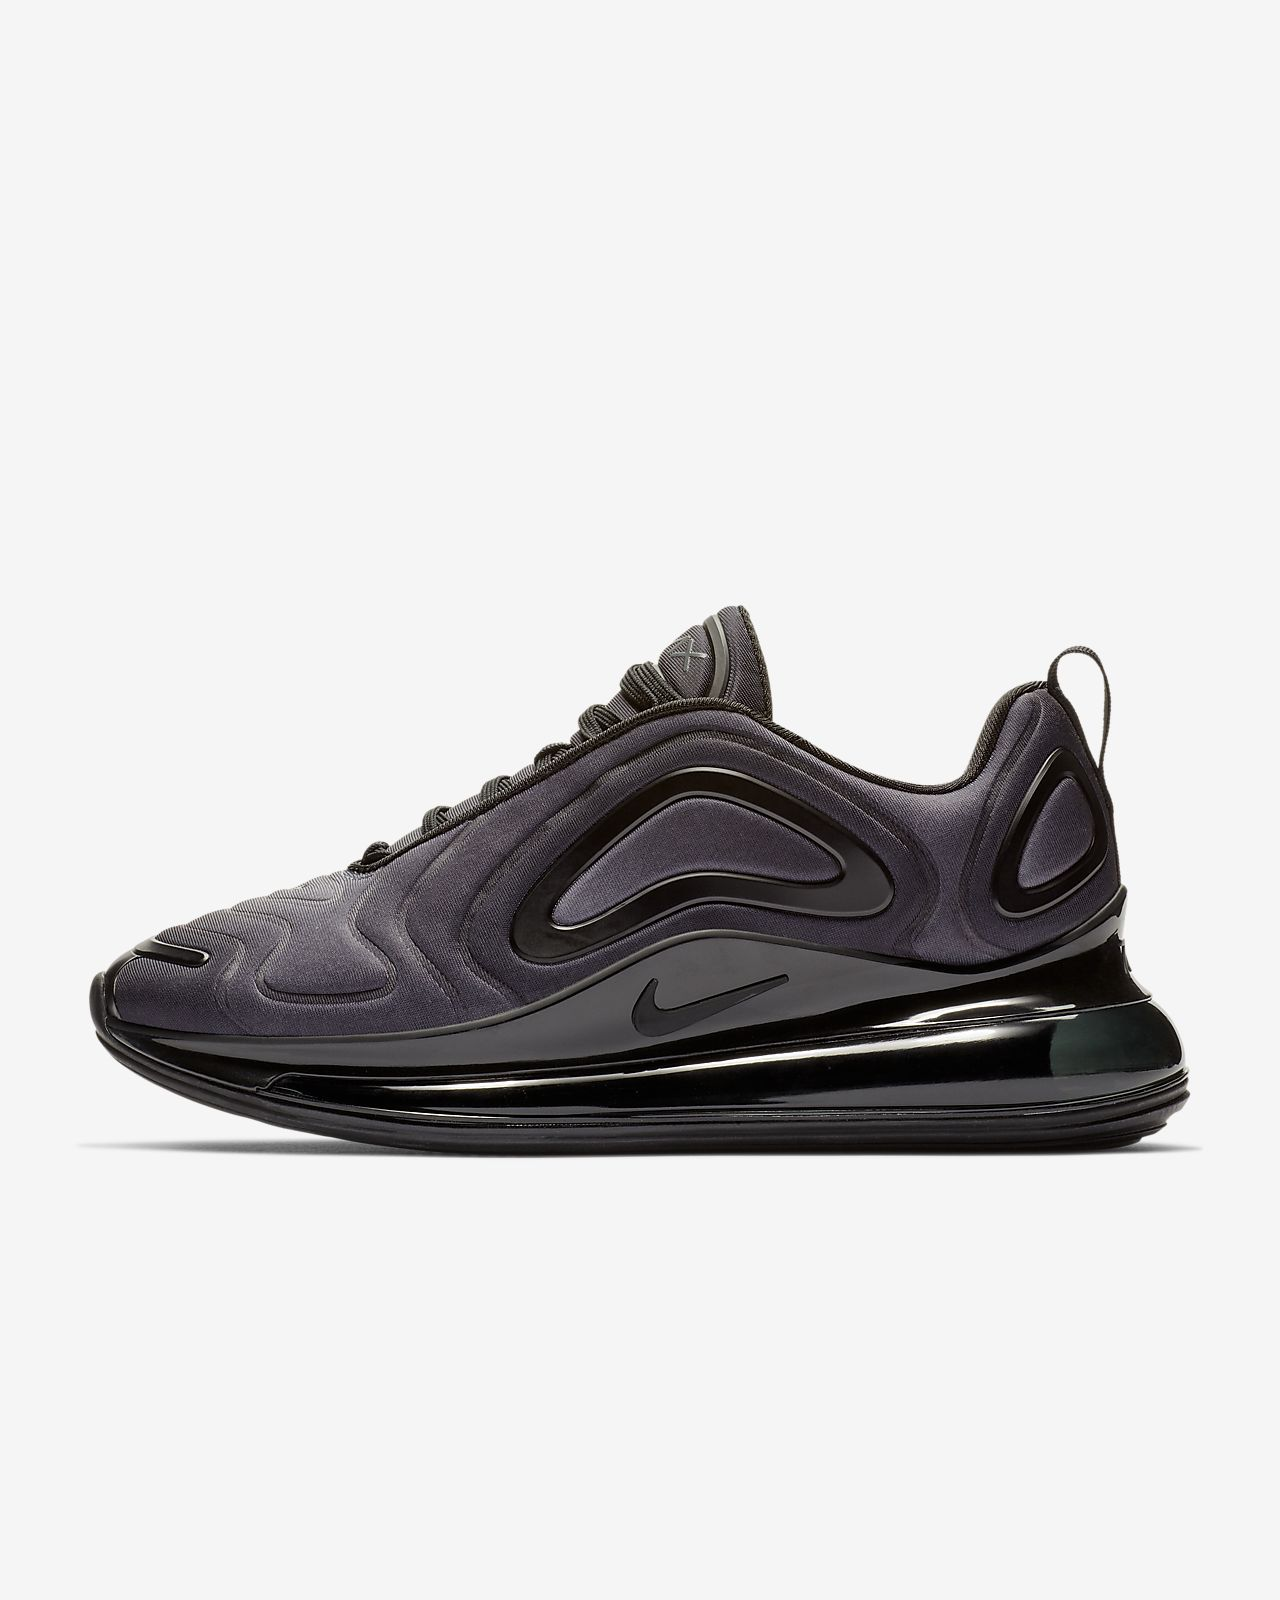 promo code ef045 031e3 ... Chaussure Nike Air Max 720 pour Femme